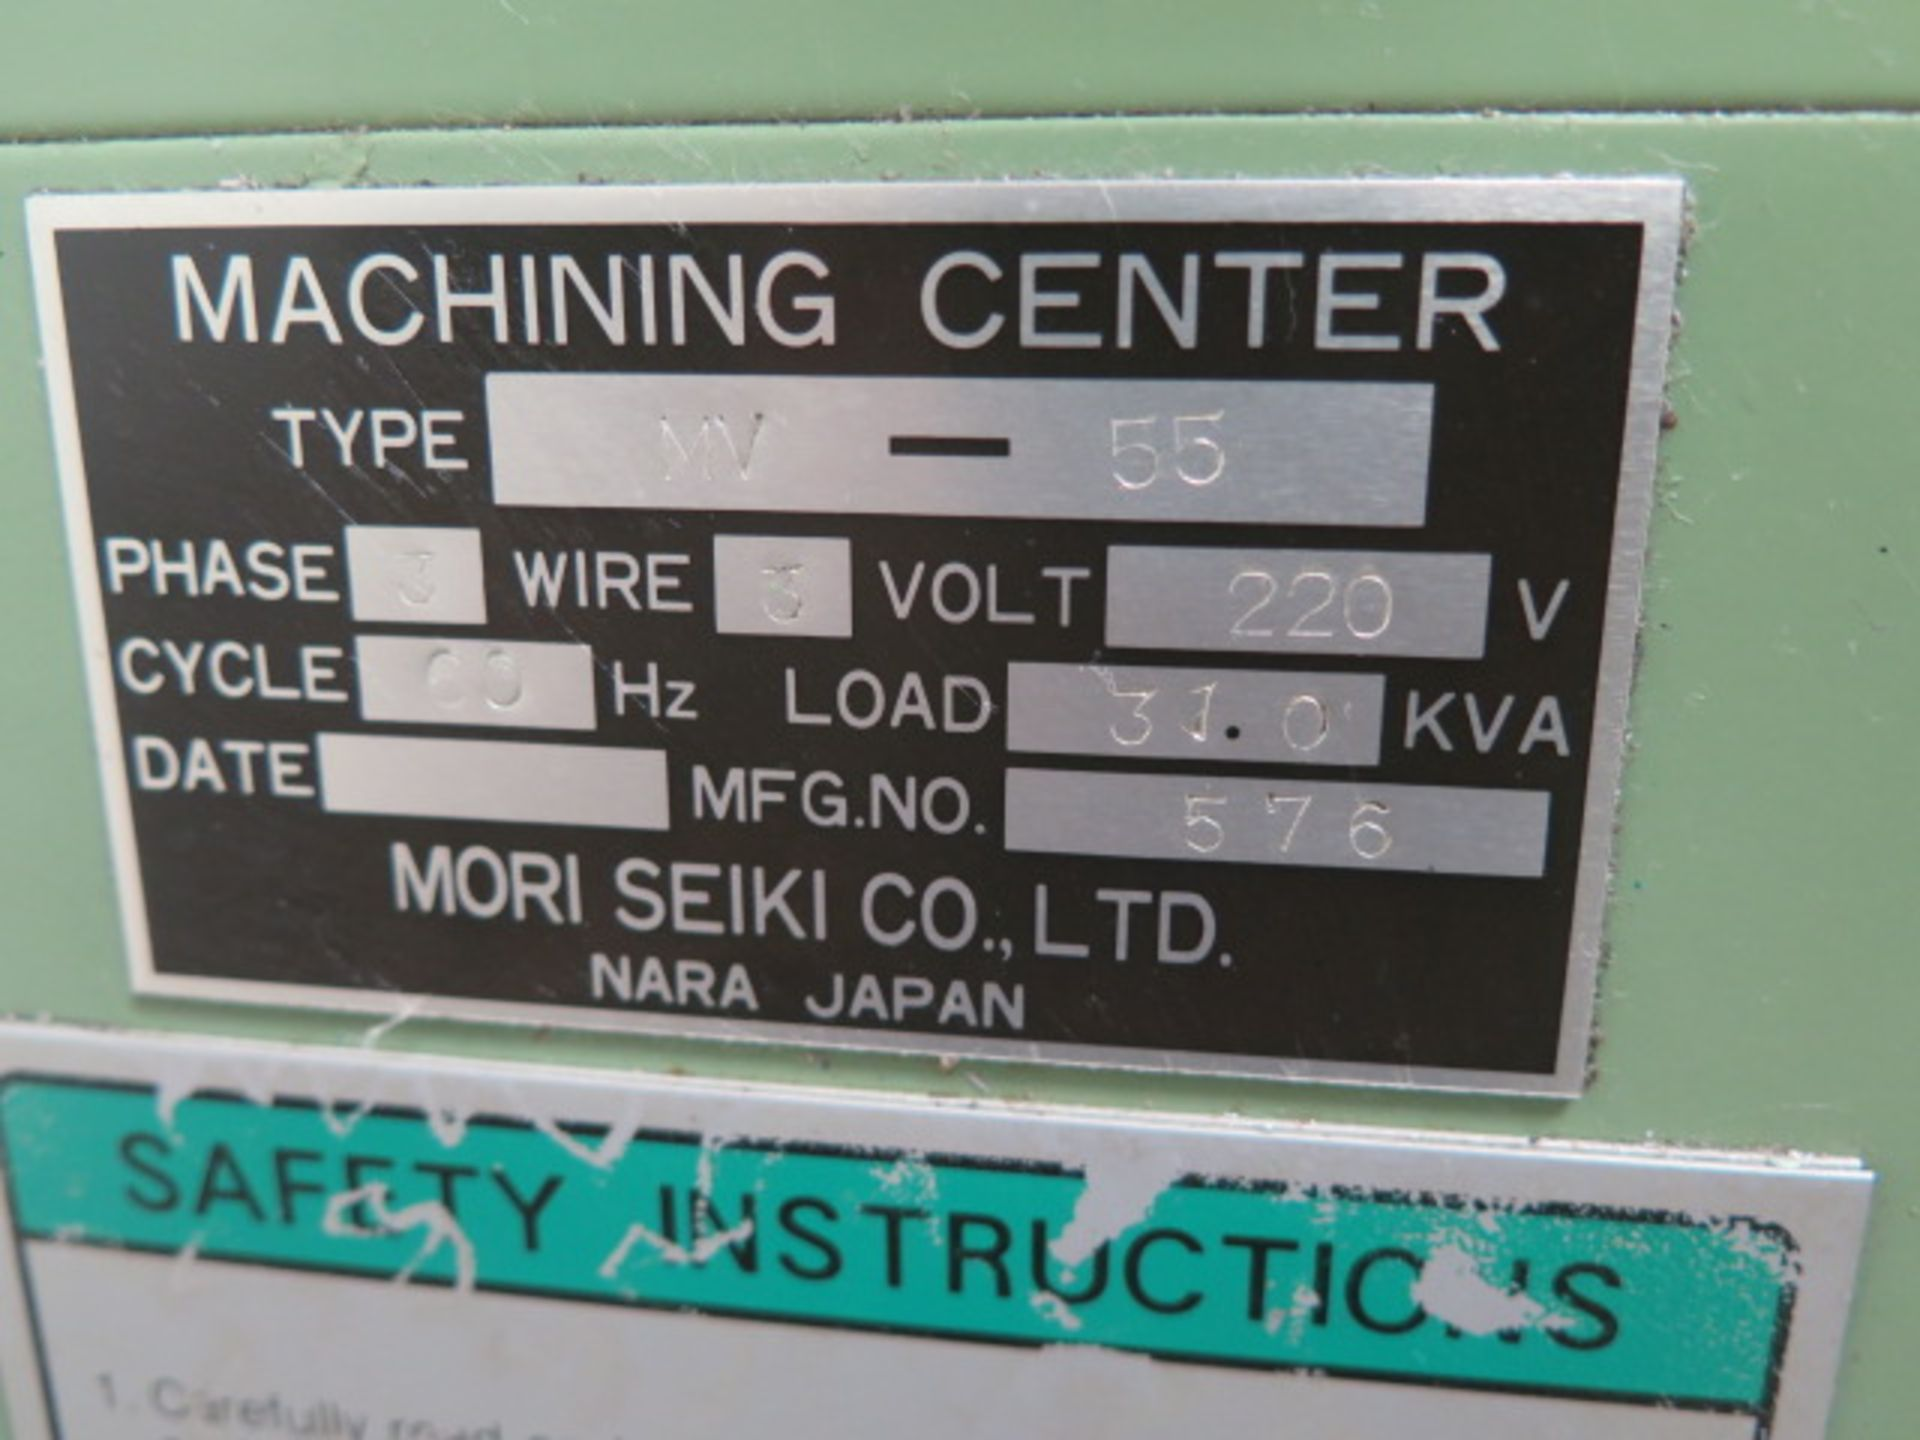 Mori Seiki MV-55 CNC Vertical Machining Center s/n 576 w/ Fanuc System 11M Controls, 24-Station ATC, - Image 13 of 13